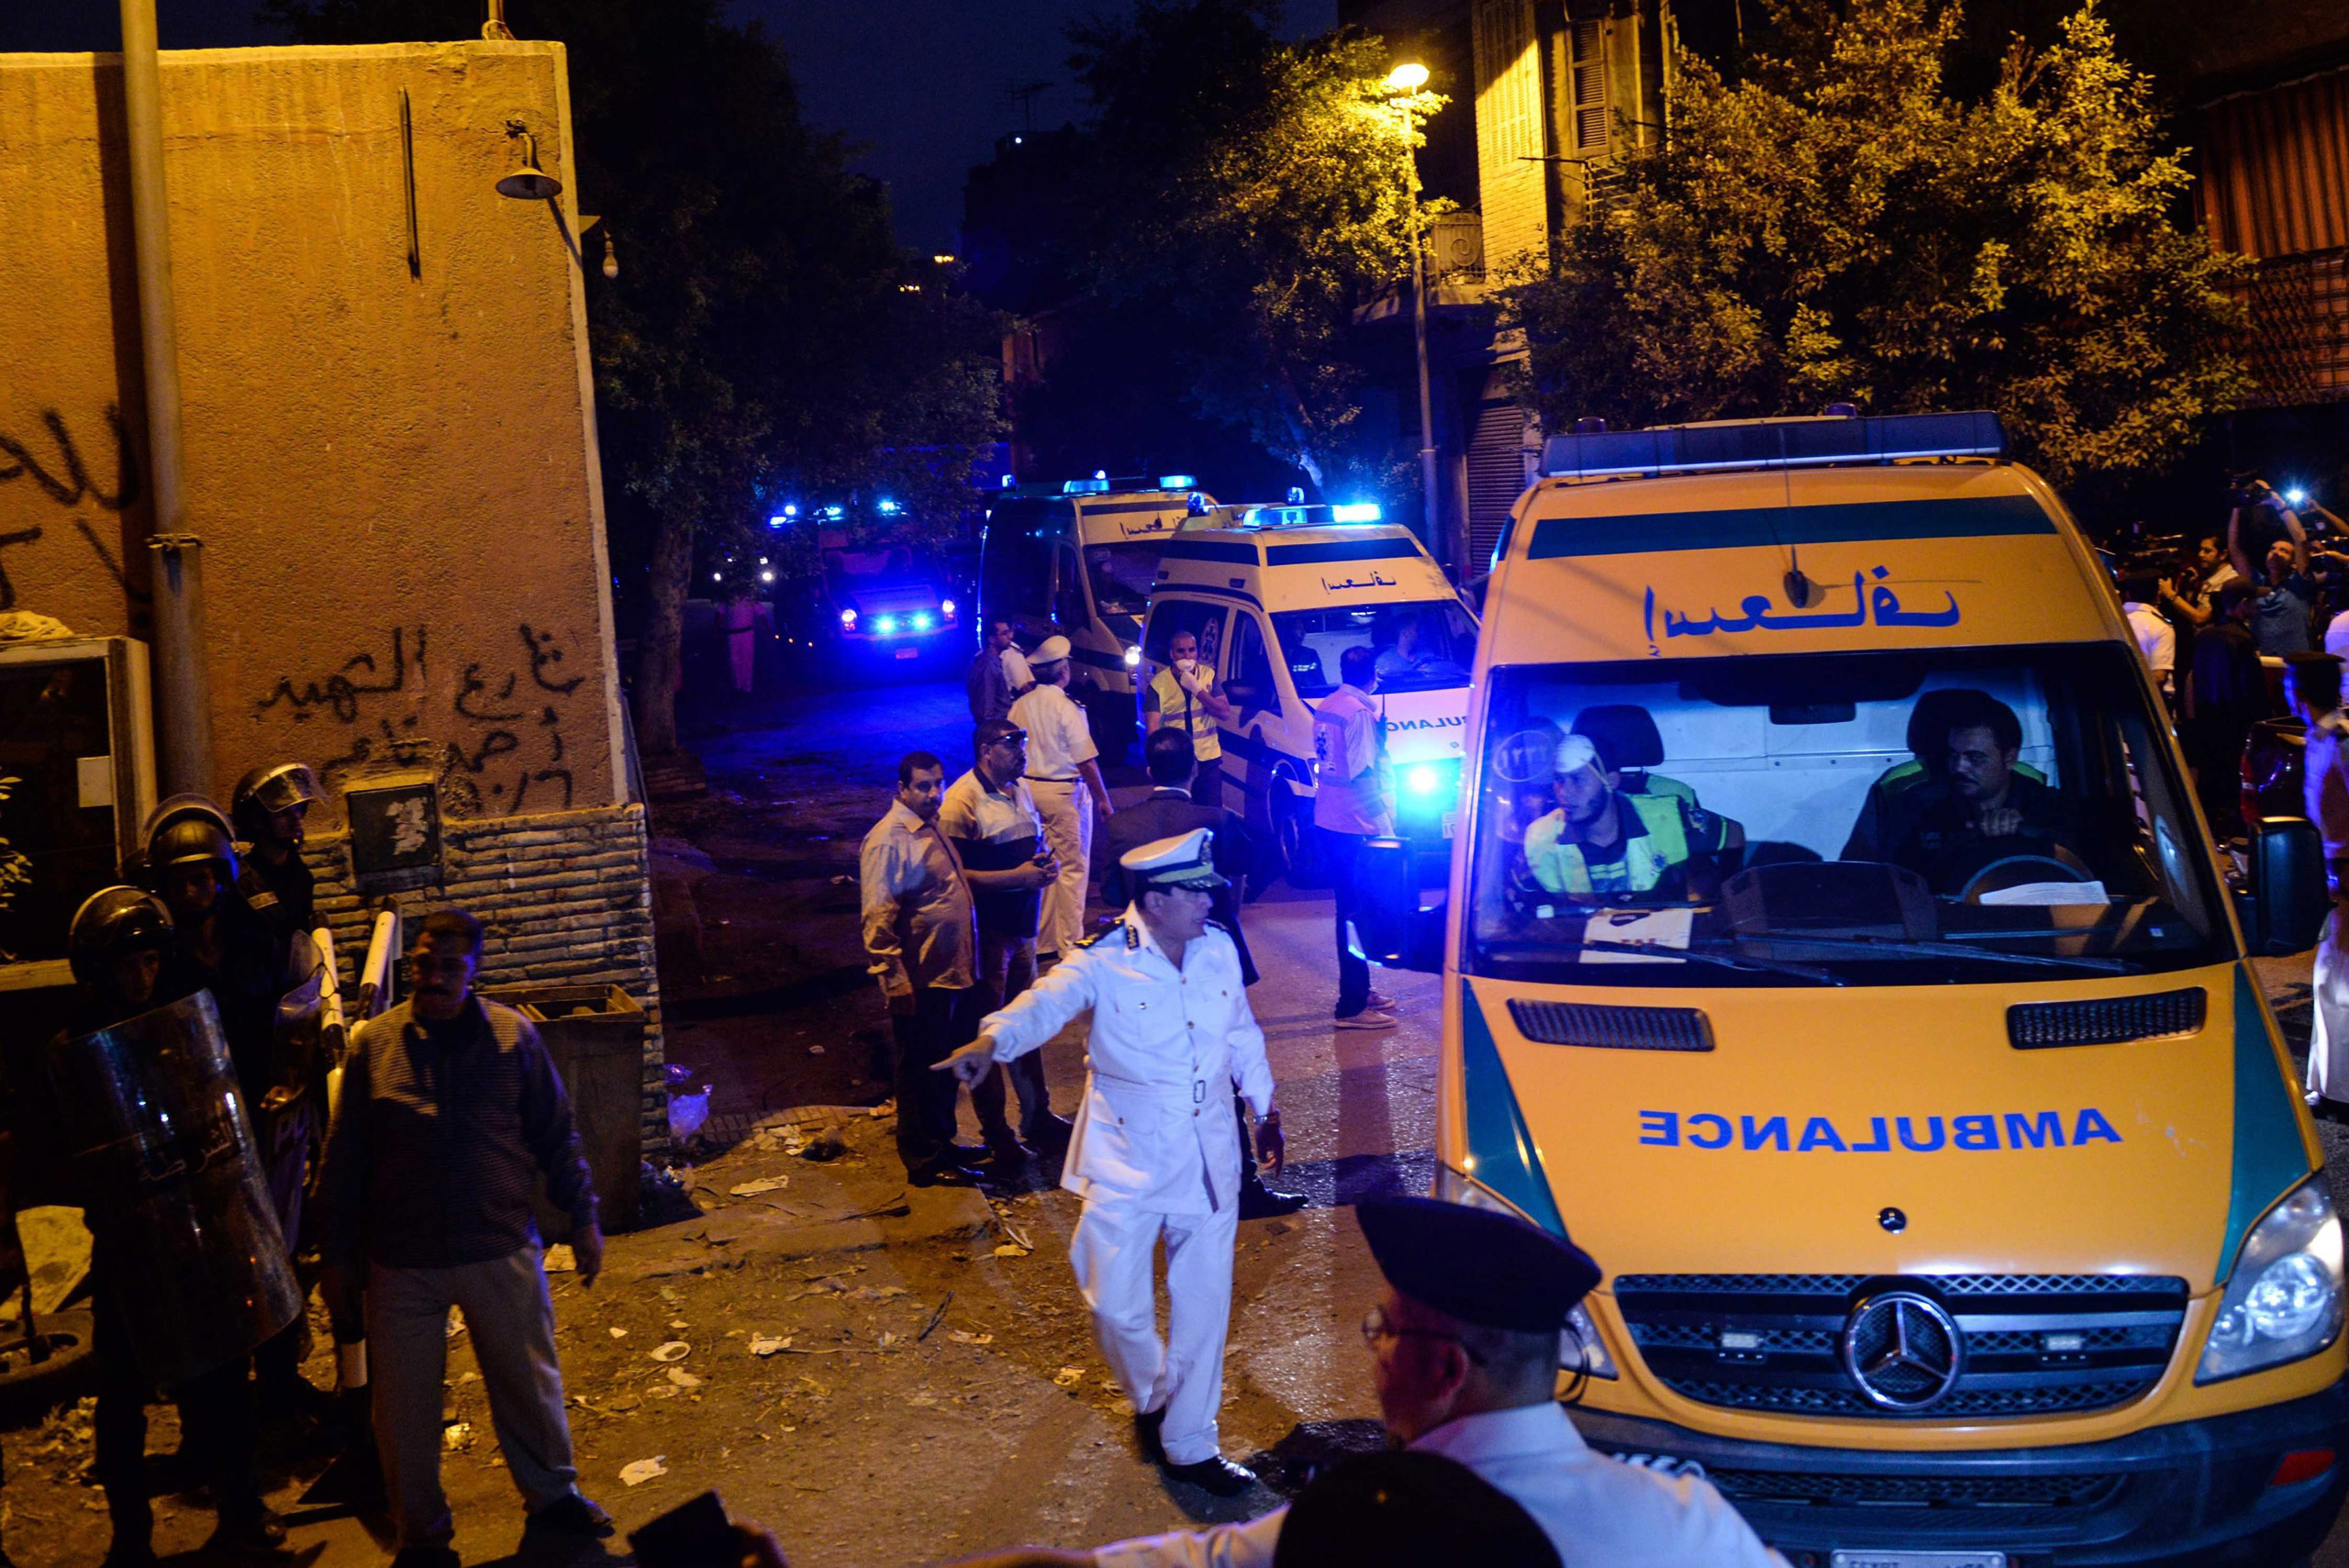 Ambulances transporting the bodies of the victims of the Russian passenger flight crash arrive at the Zeinhom morgue in Cairo on Oct. 31, 2015.